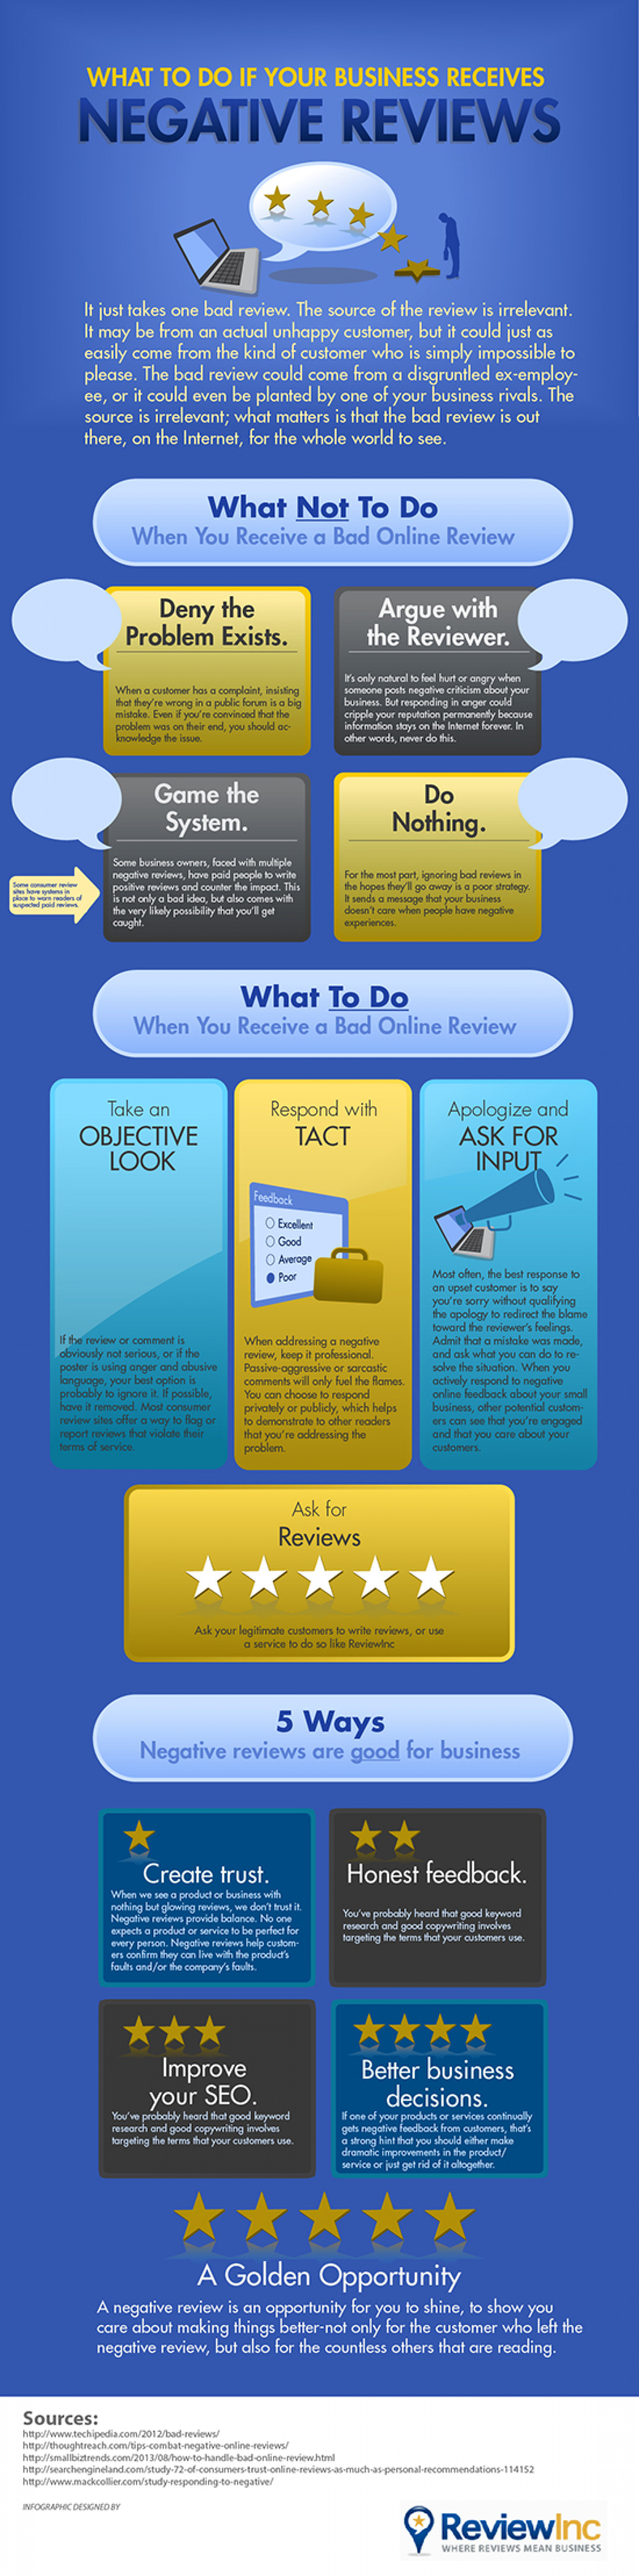 What To Do If Your Business Receives Negative Reviews Infographic